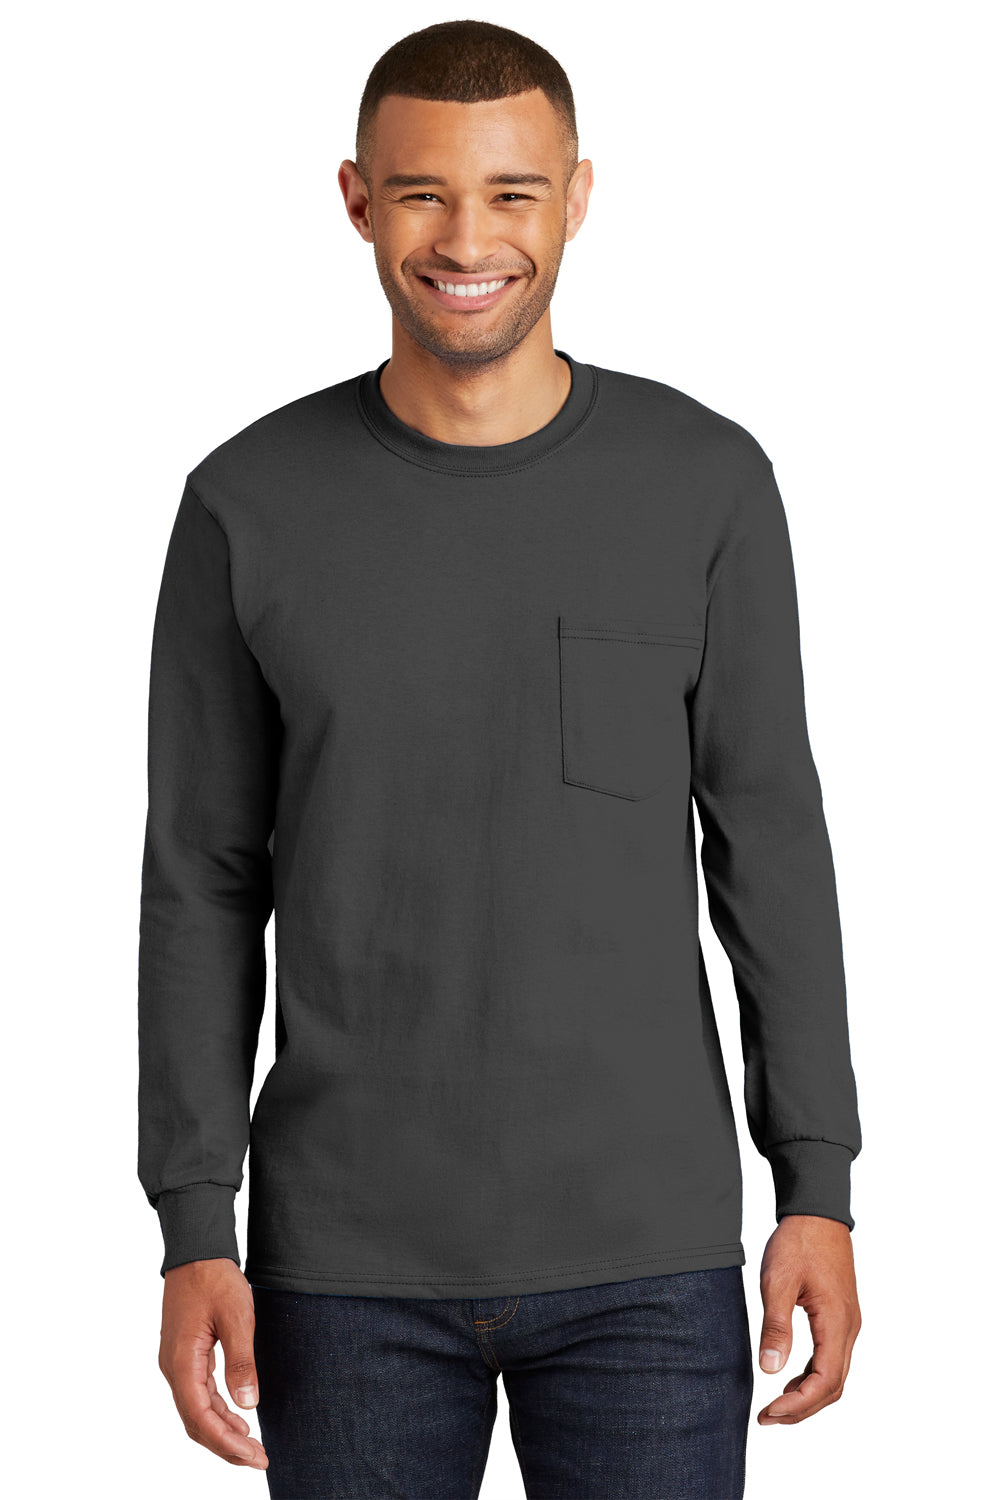 Port & Company PC61LSP Mens Essential Long Sleeve Crewneck T-Shirt w/ Pocket Charcoal Grey Front